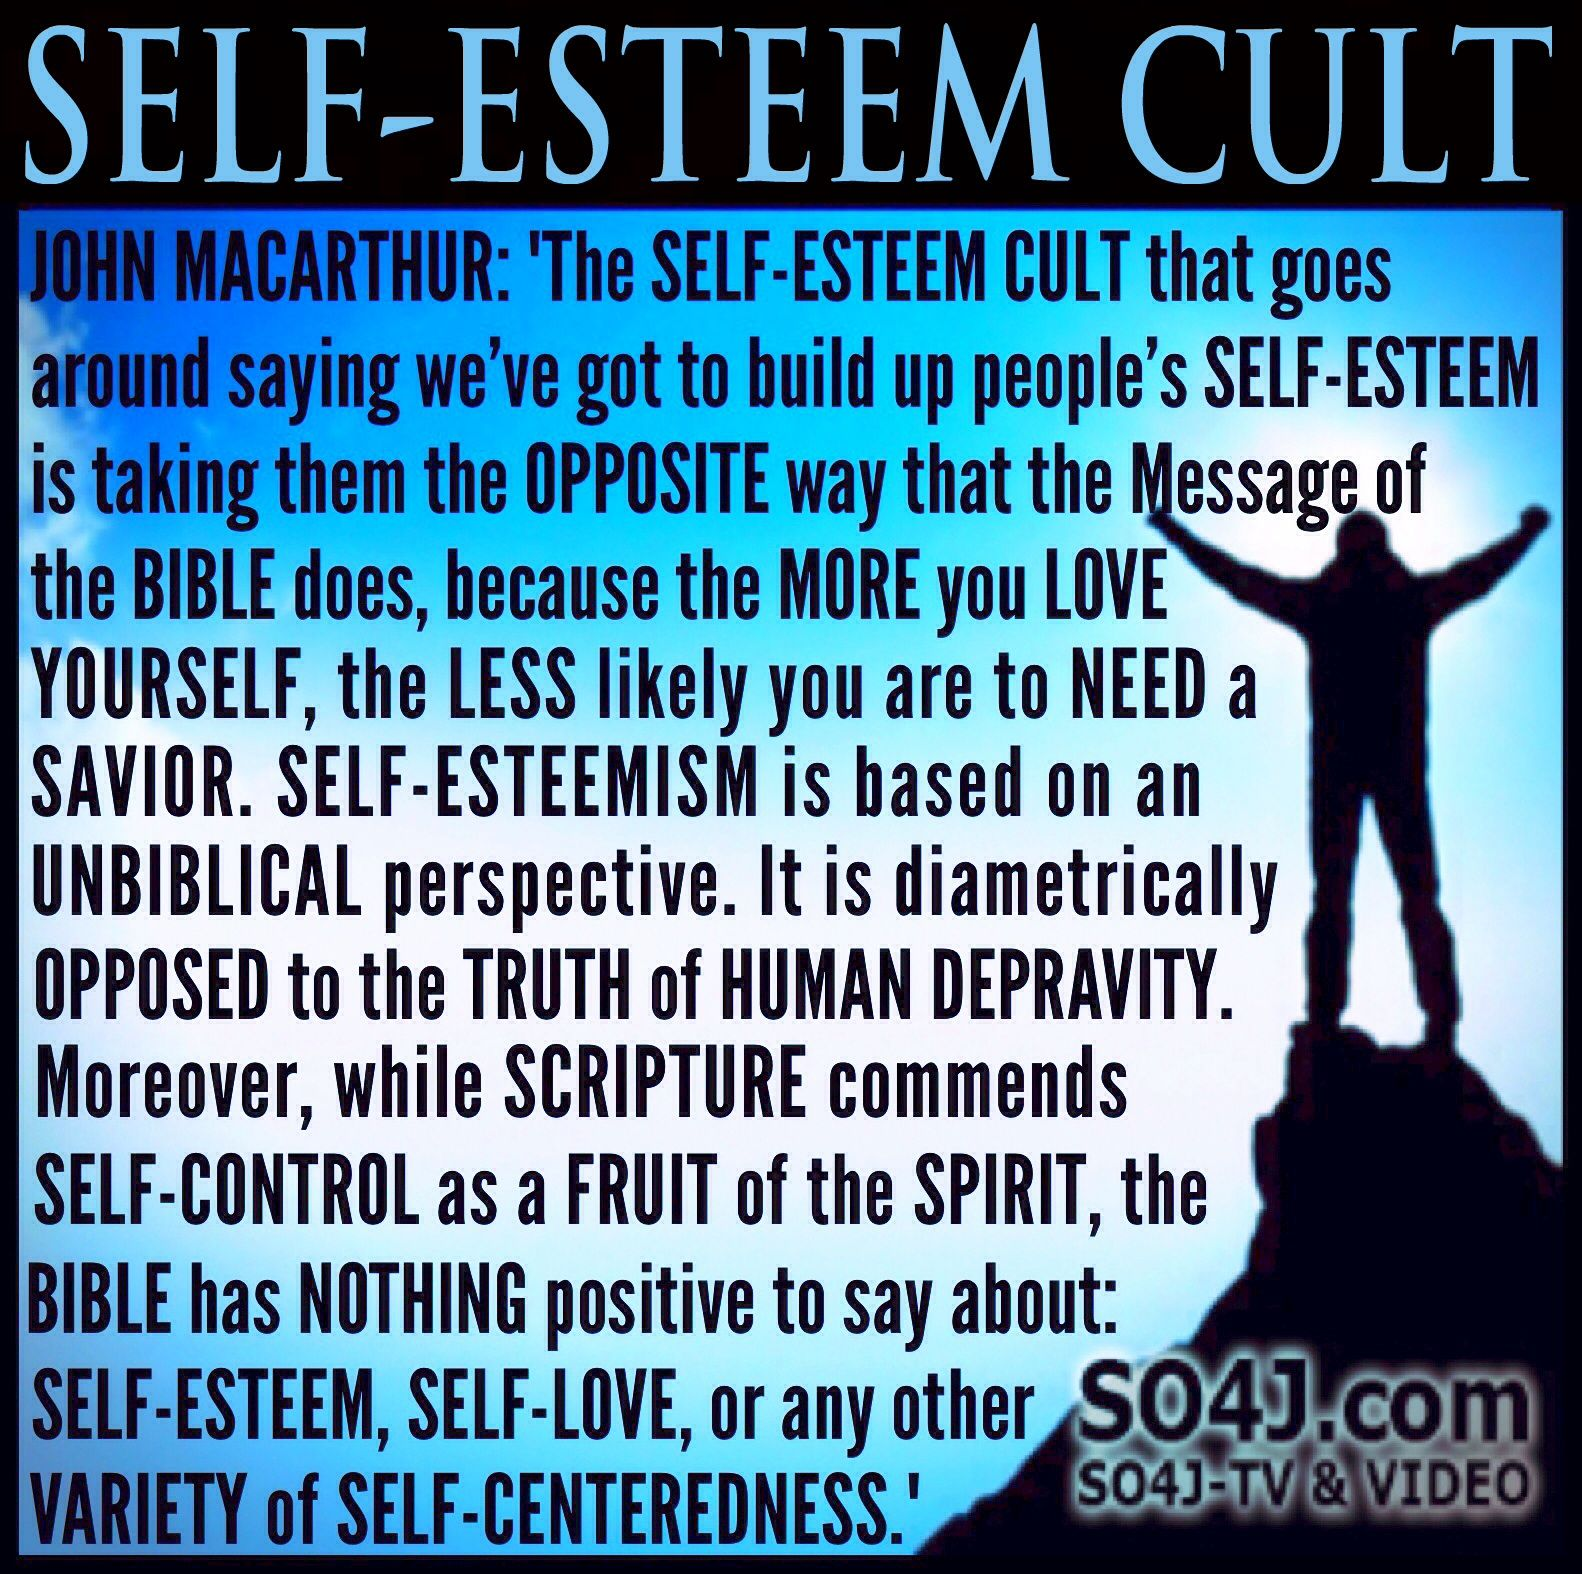 John Macarthur Quotes: Self-Esteem Cult - Quote By John MacArthur